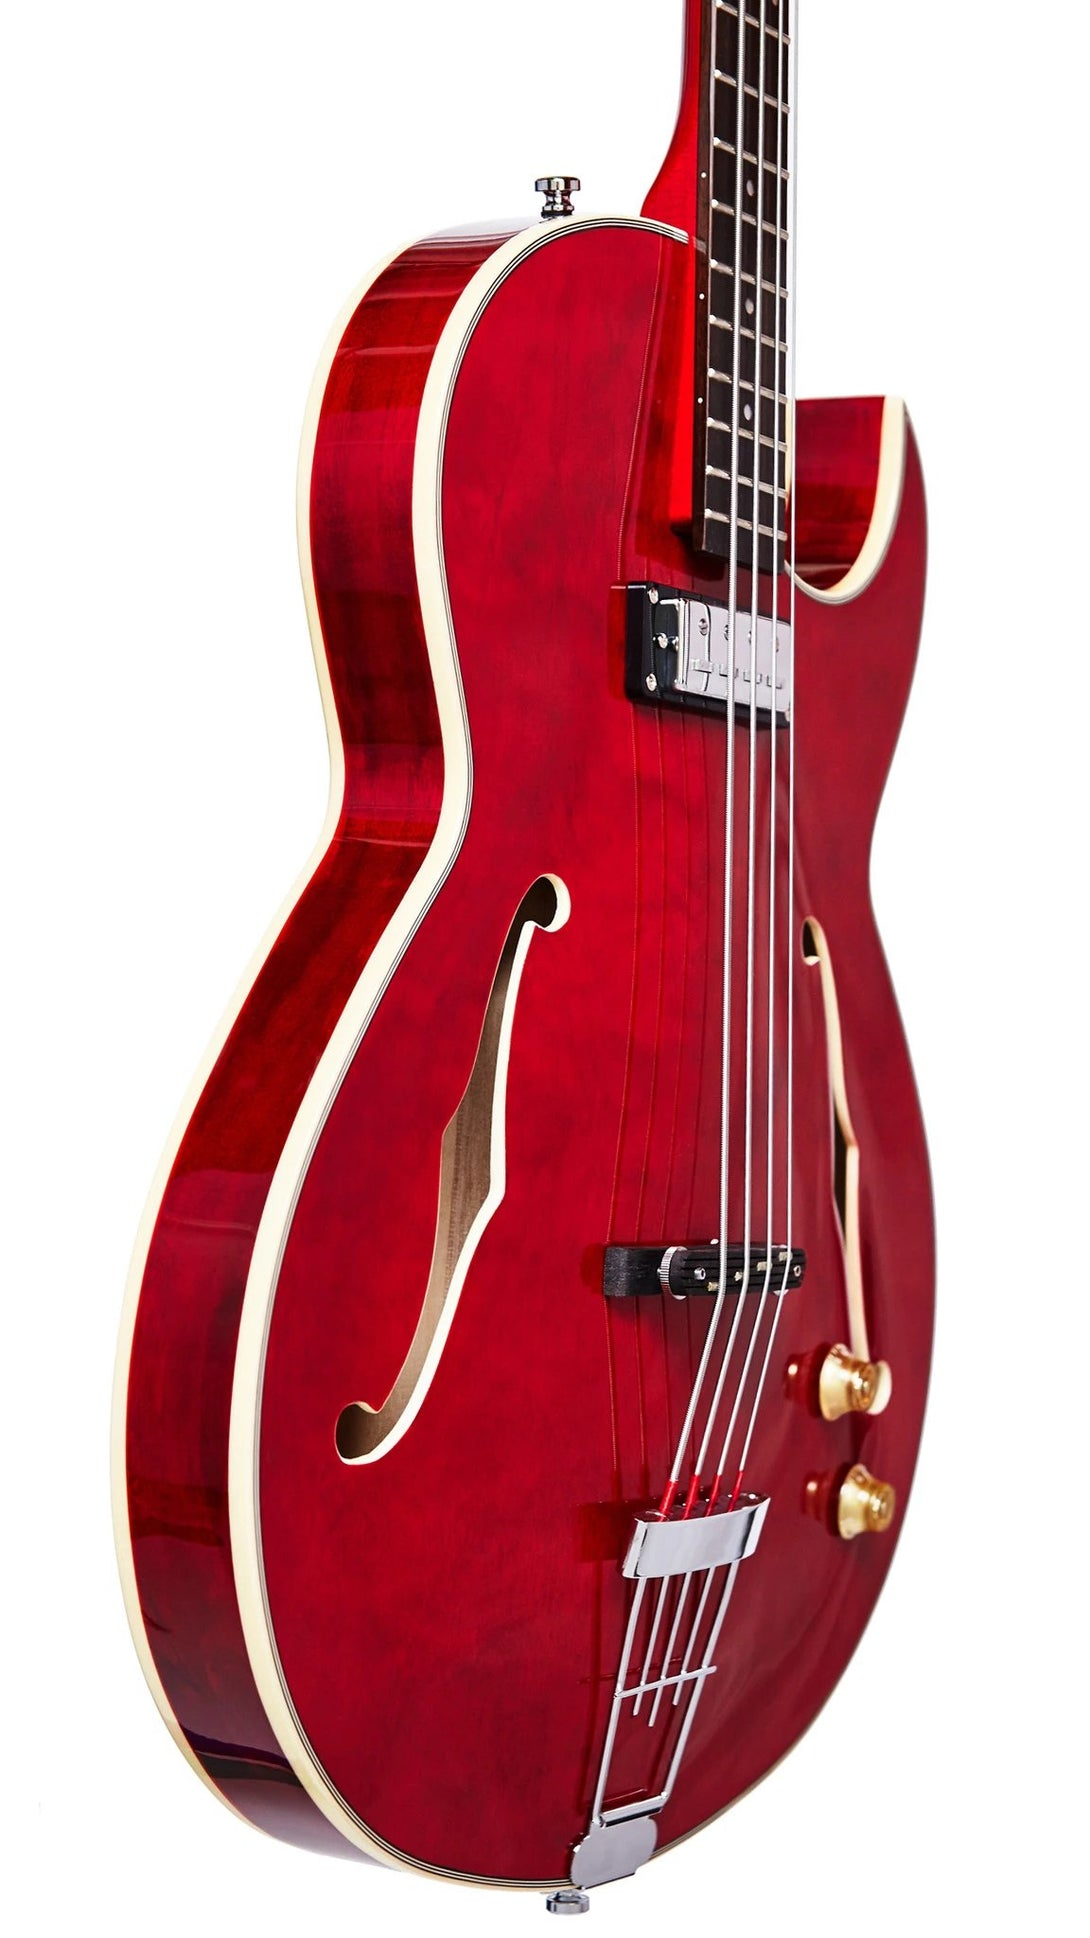 Eastwood Guitars Saturn IV Cherry Player POV